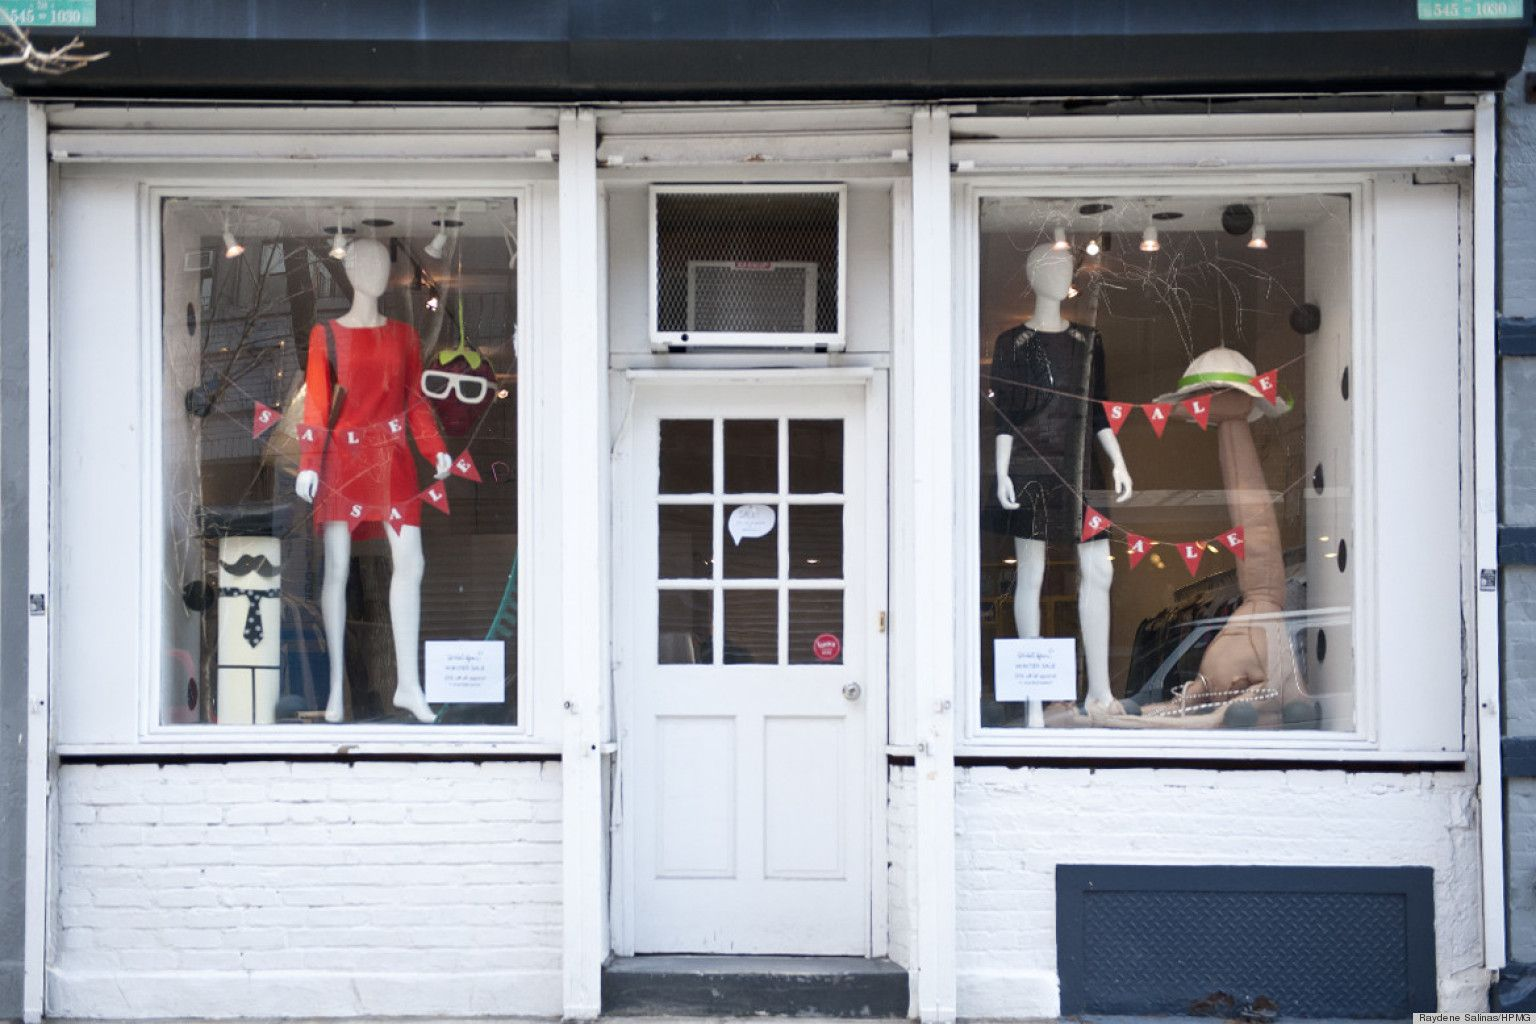 Opening your own boutique or starting a fashion business